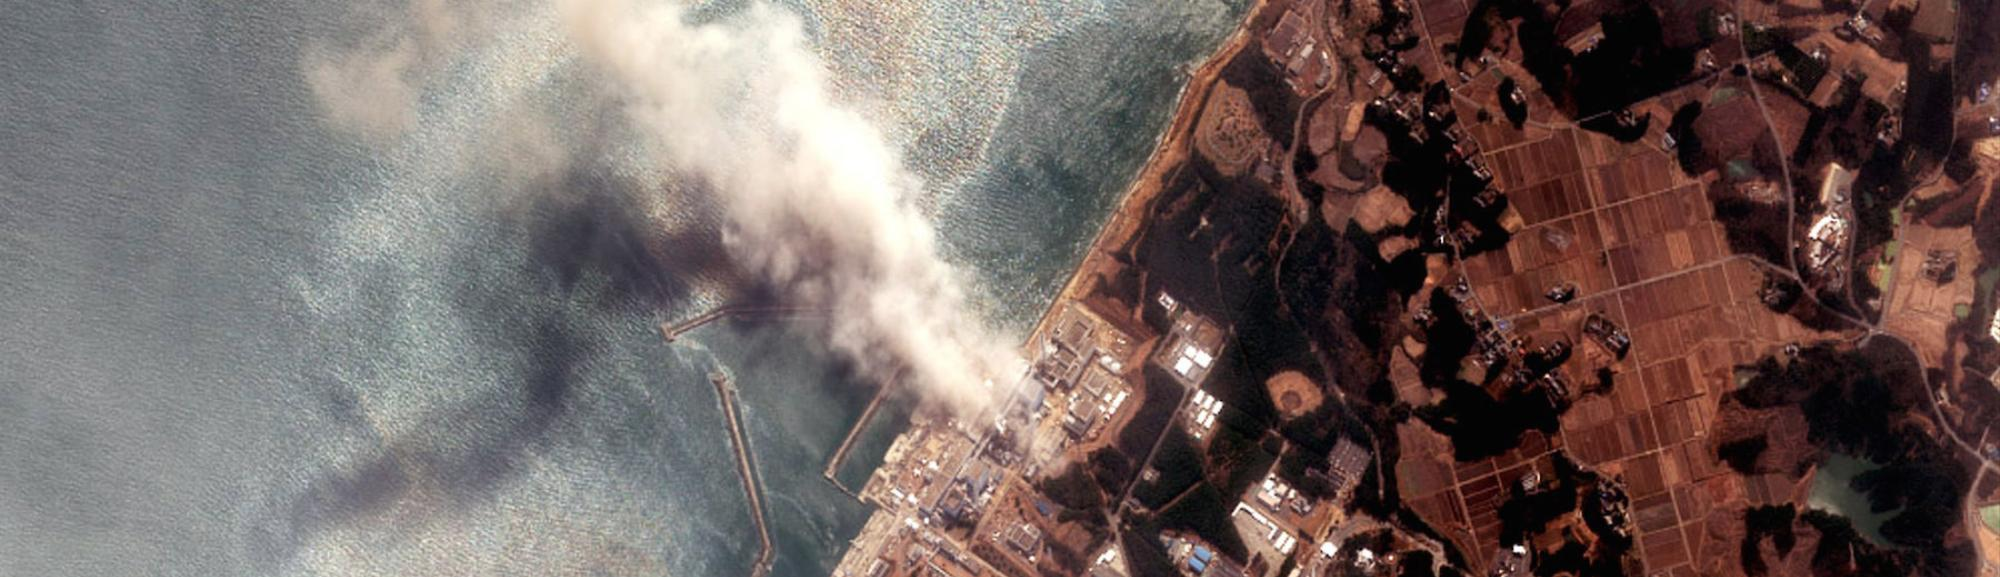 Radioactive Leaks Remain a Problem on the Fourth Anniversary of Japan's Fukushima Meltdown